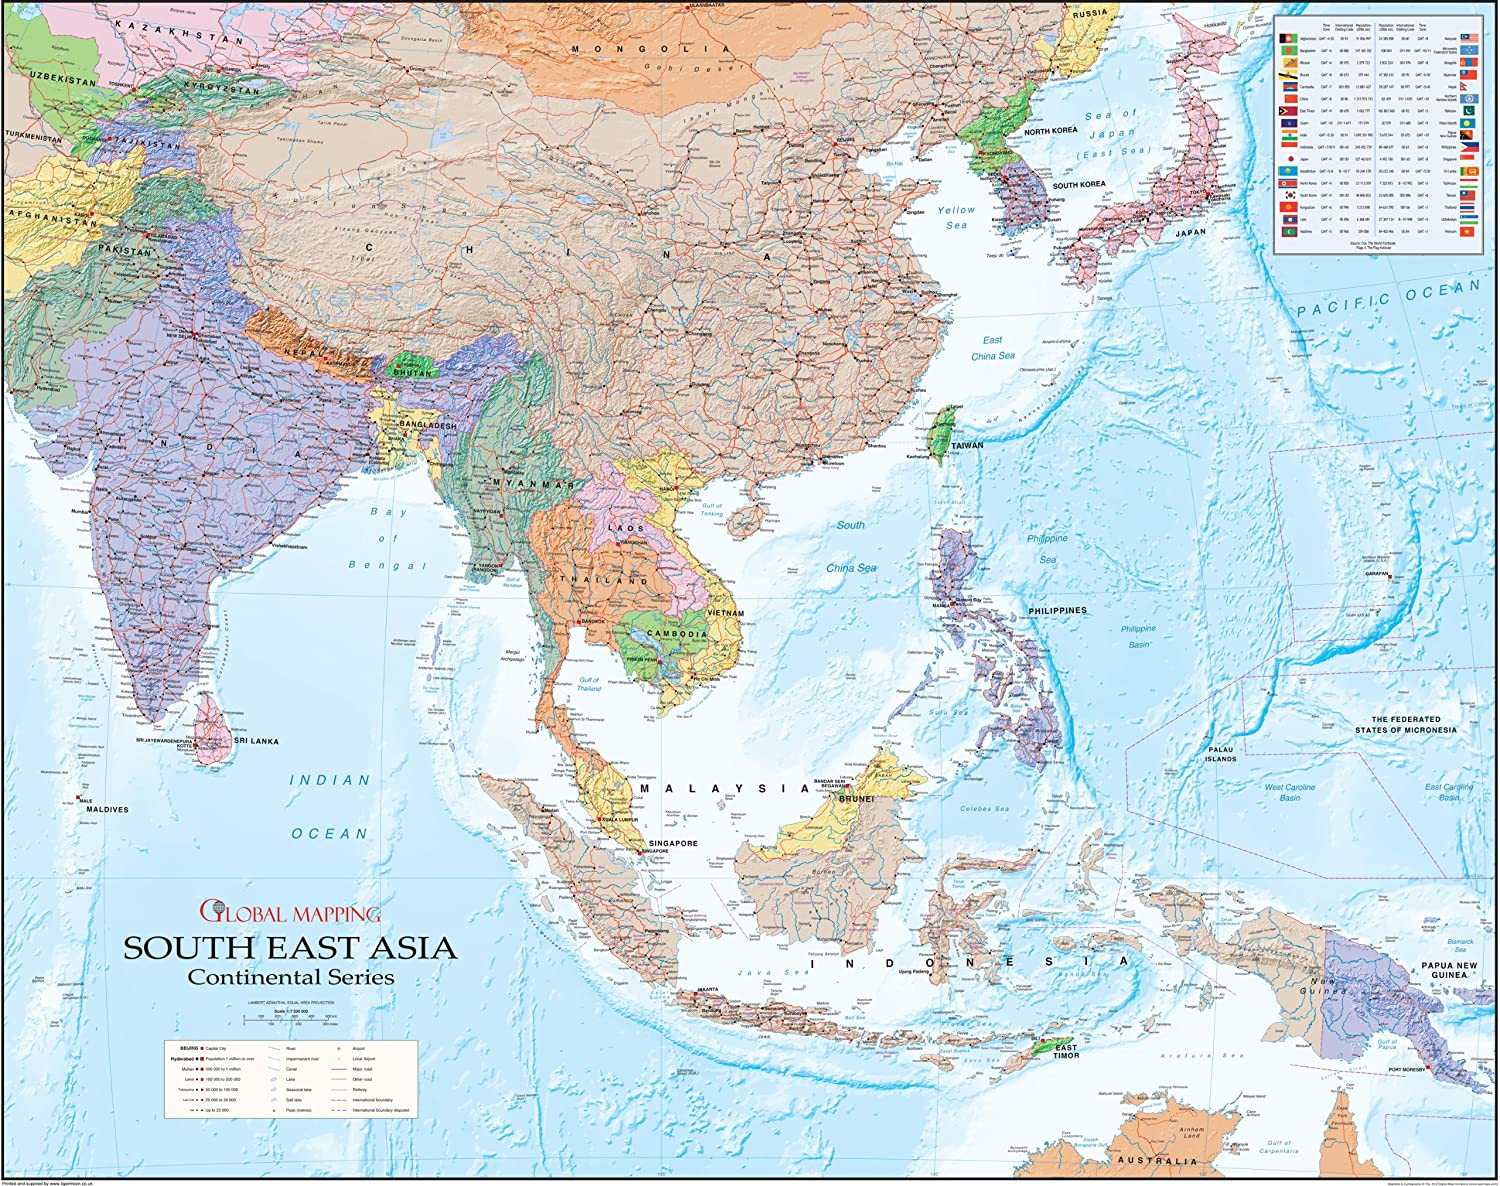 South East Asia Wall Map Global Mapping Continental Series – East Asia and Southeast Asia Map